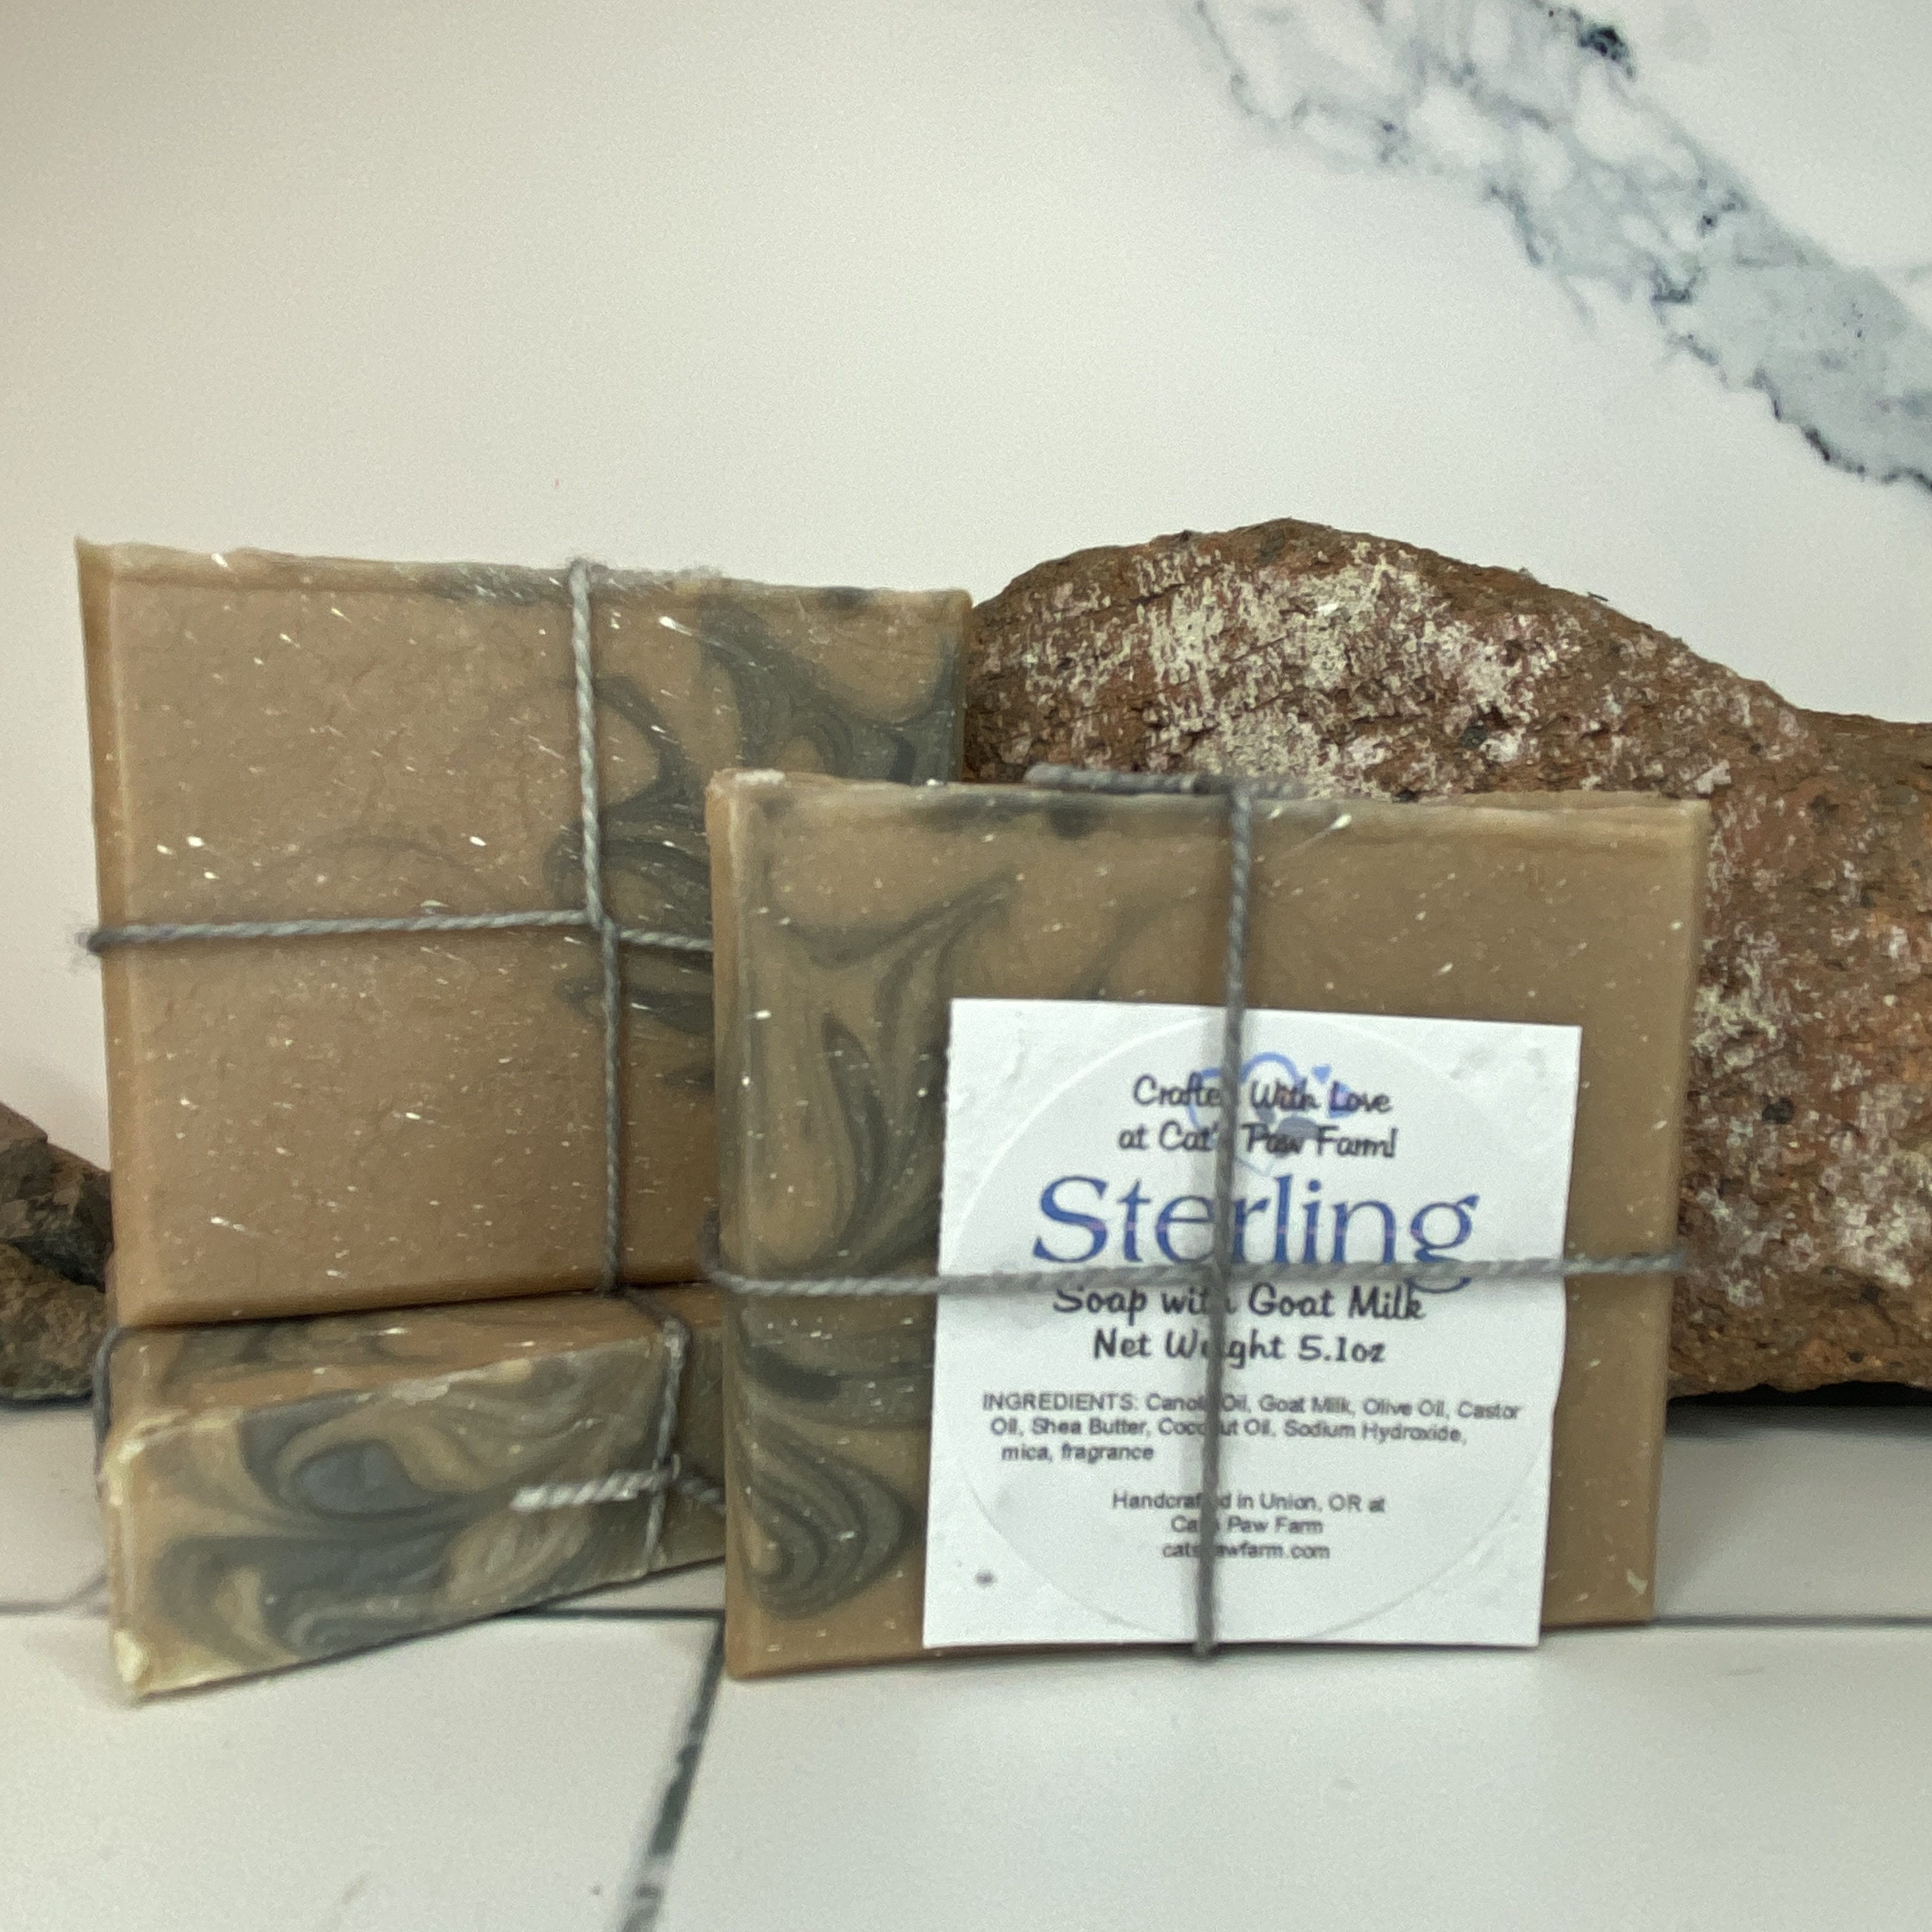 Sterling Scented Soap with Goat Milk